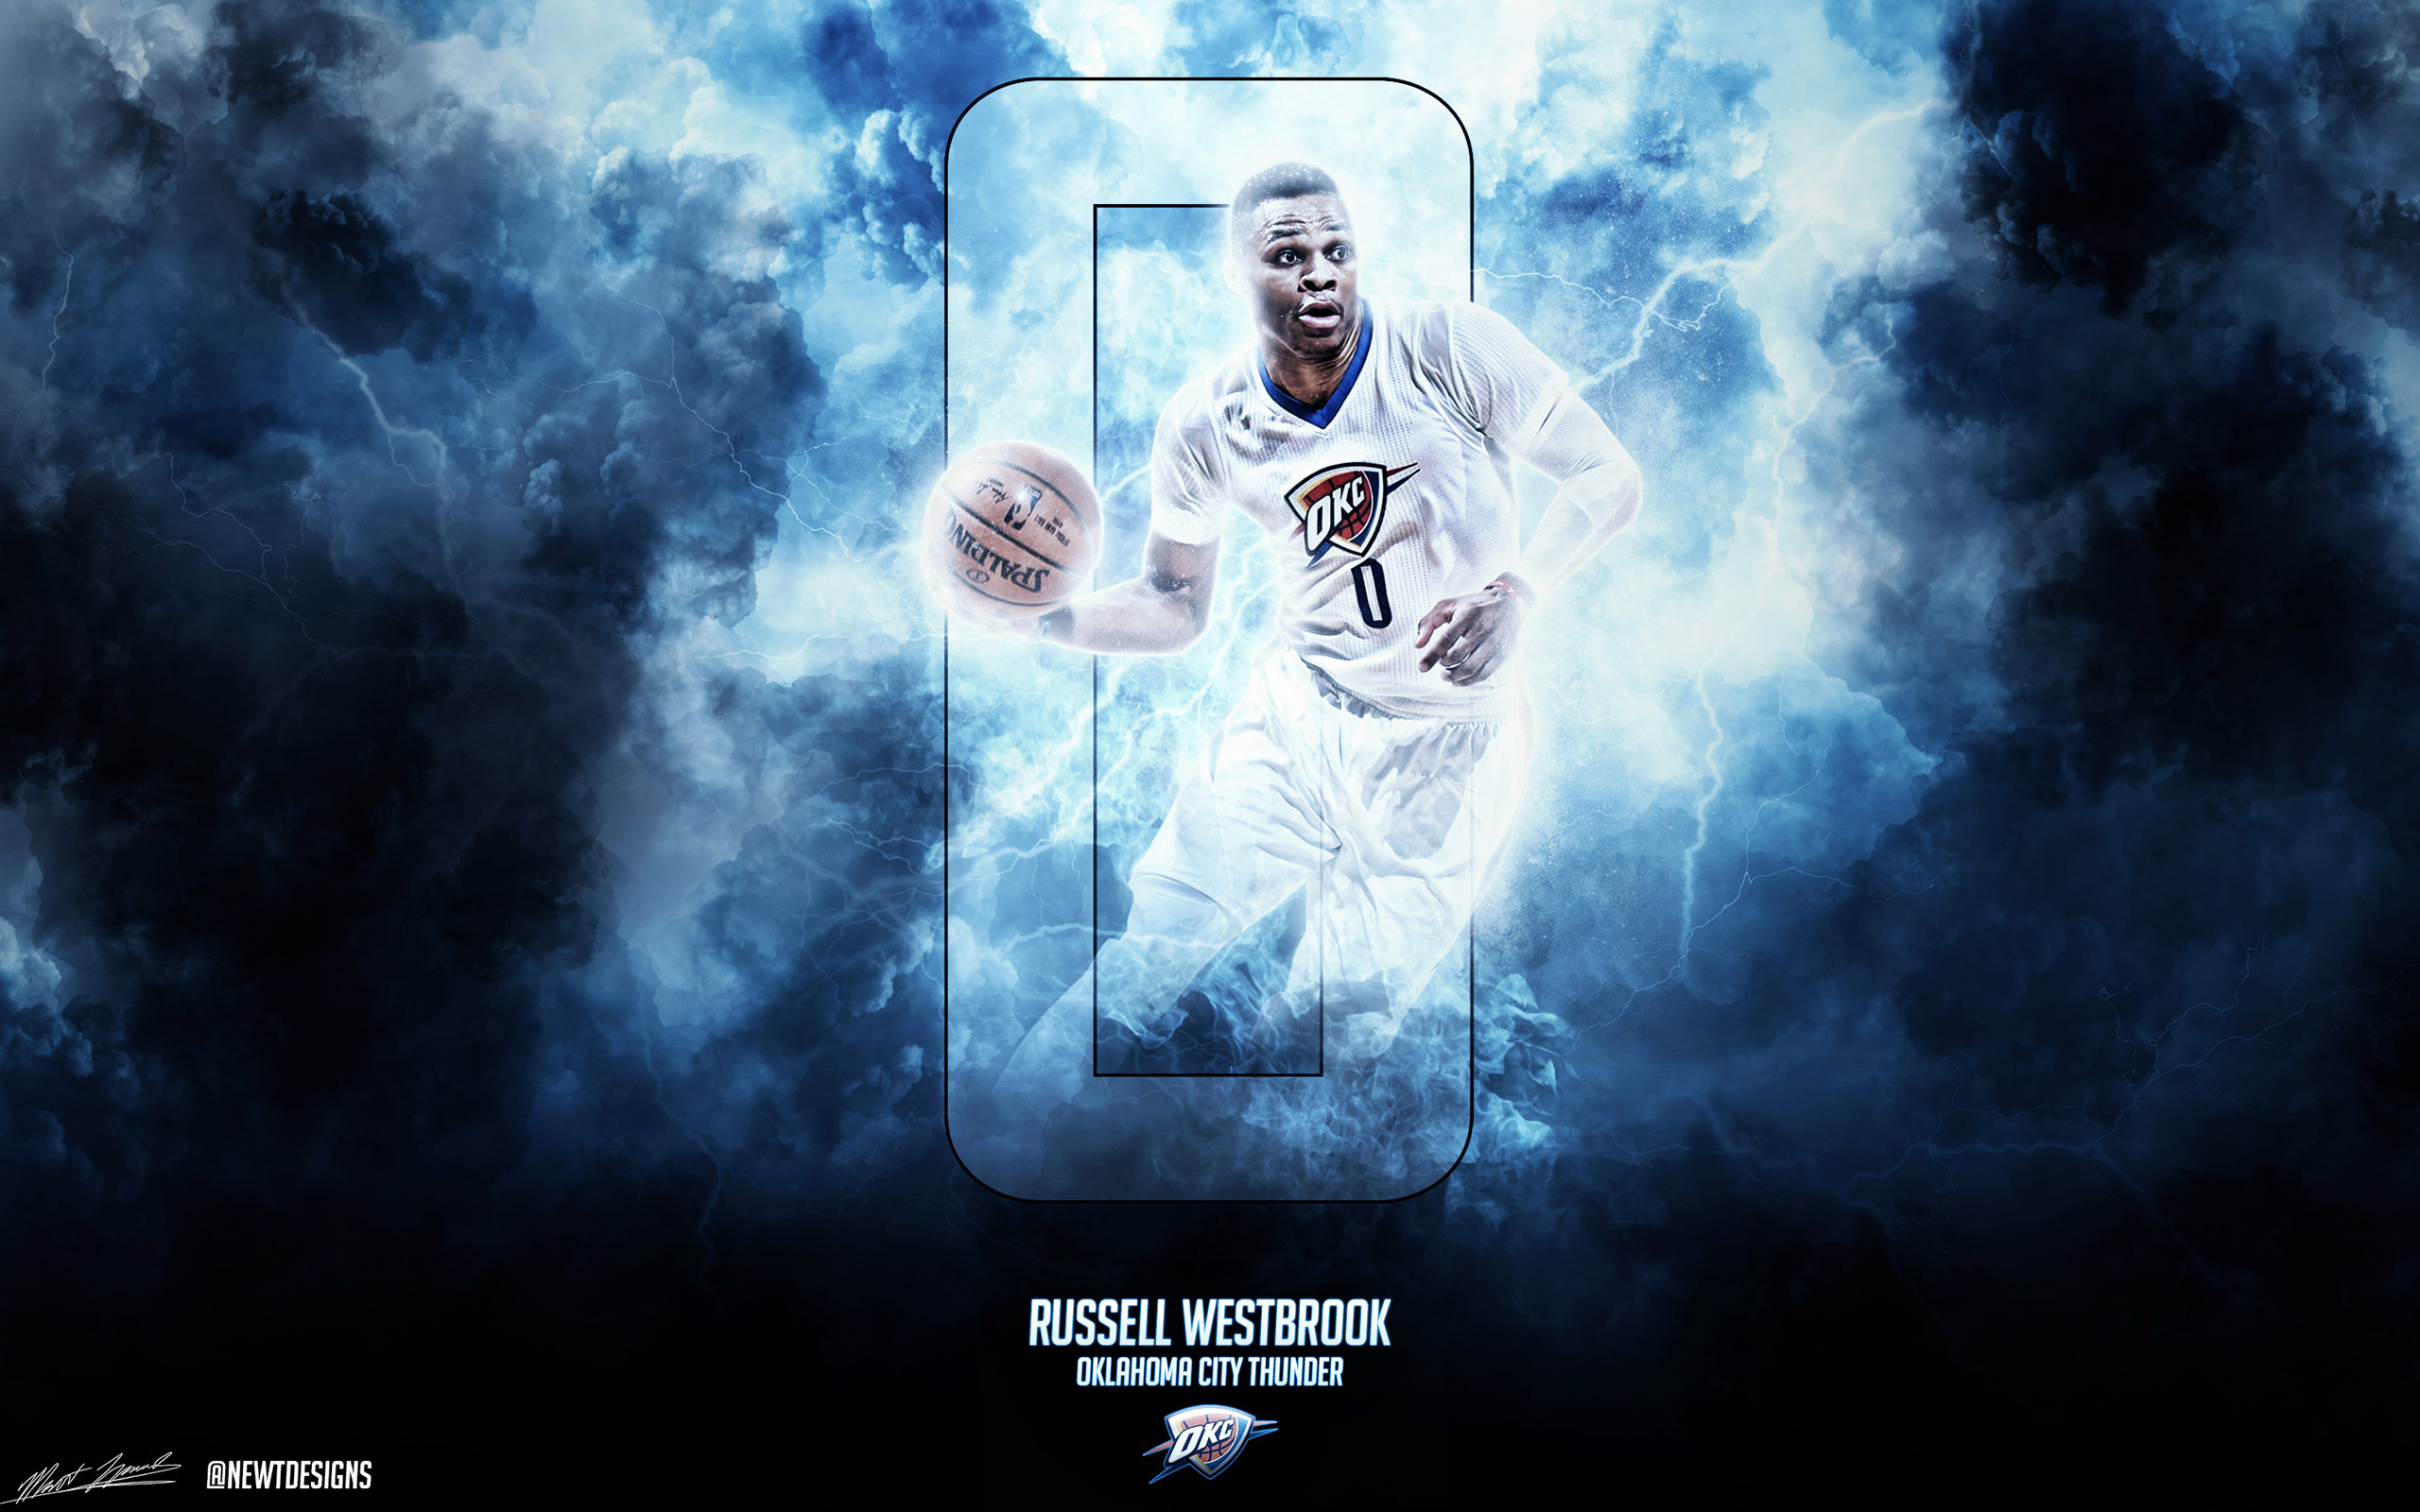 Russell Westbrook 25601600 Wallpaper Basketball Wallpapers at 2560x1600